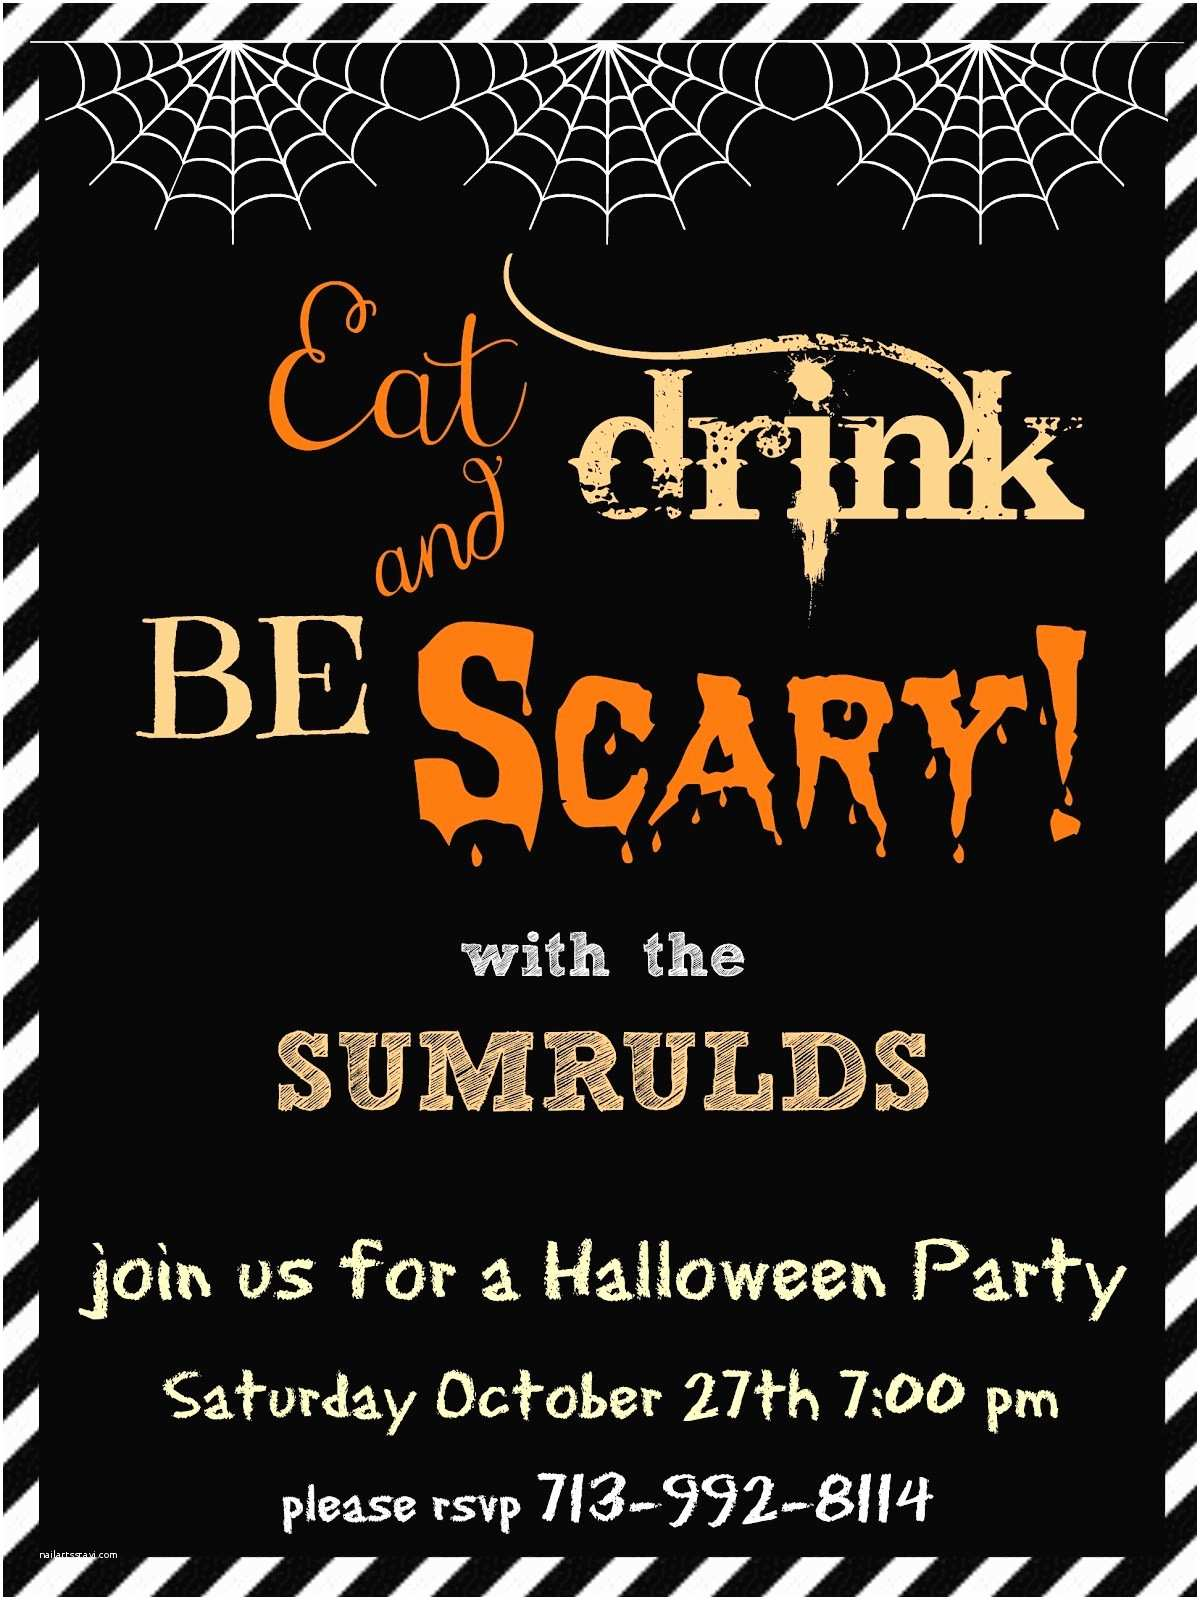 Halloween Party Invitations Crafty In Crosby Halloween Party Invitations Please